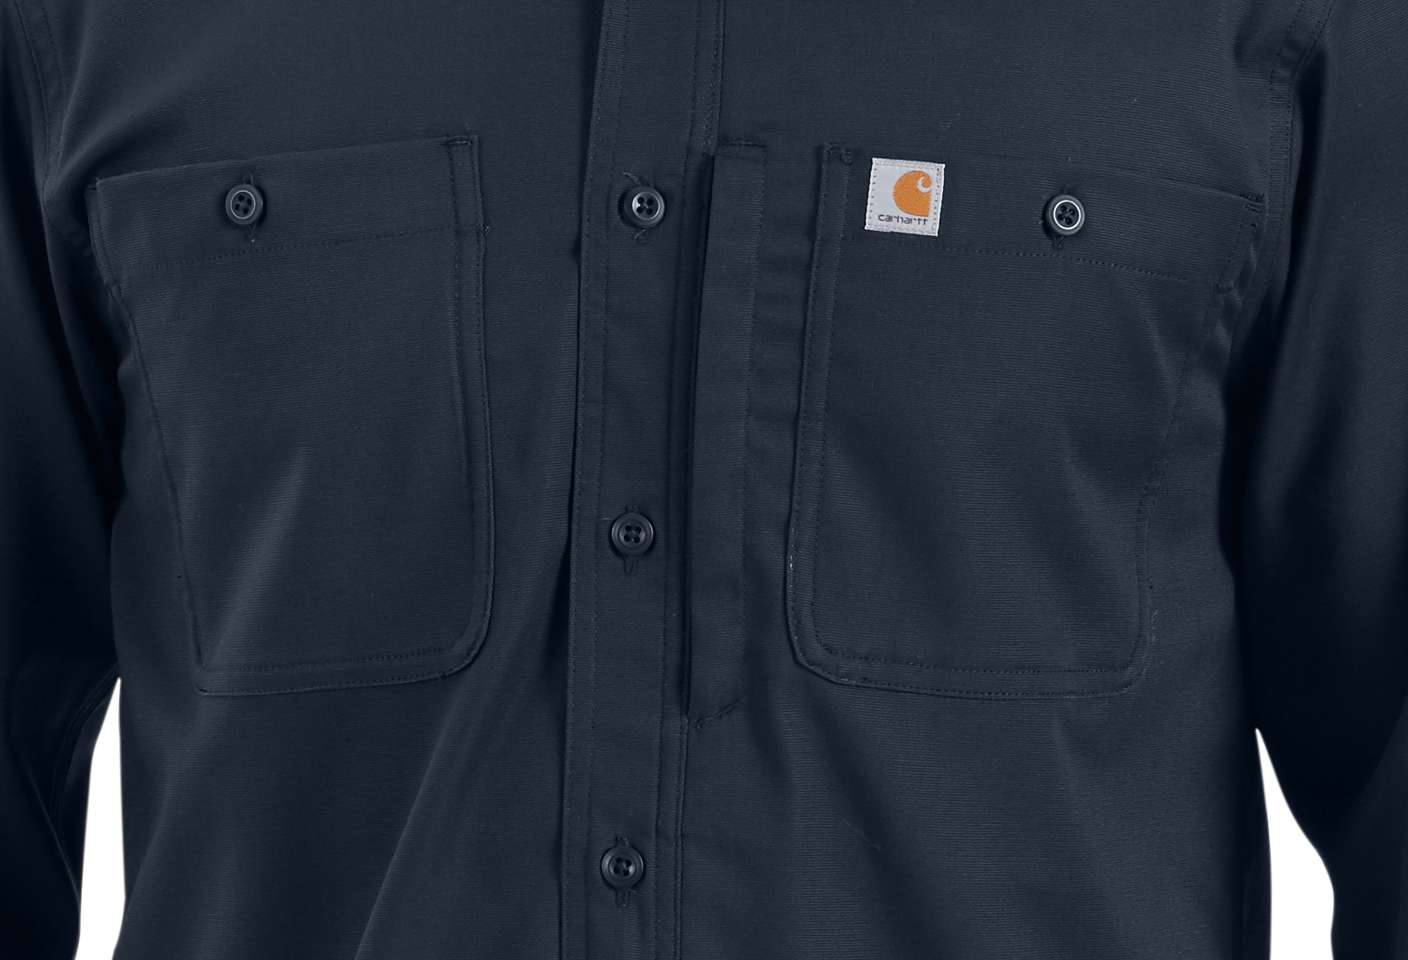 Chest map-pocket with zip closure secures your gear